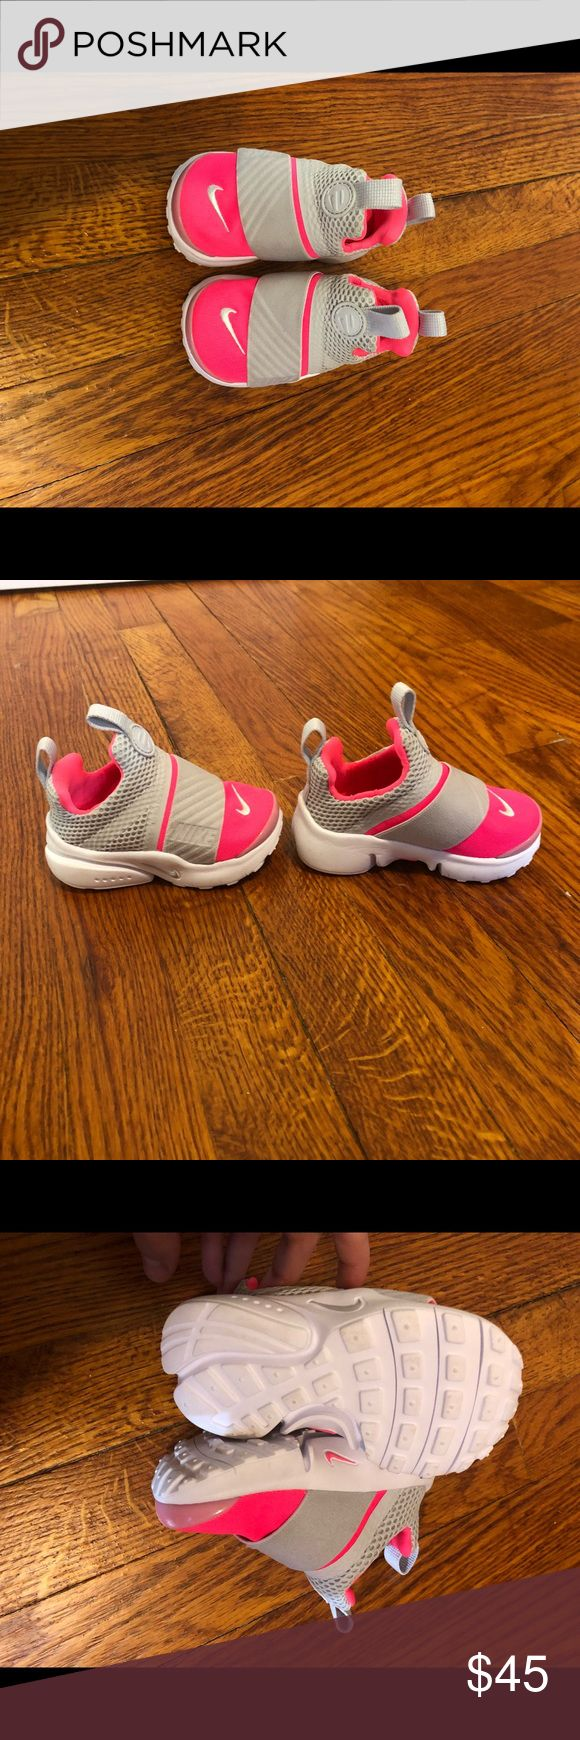 Brand new size 6 toddler Nike shoes. Perfect condition, never used. Color is light gray and hot pink. Nike Shoes Athletic Shoes